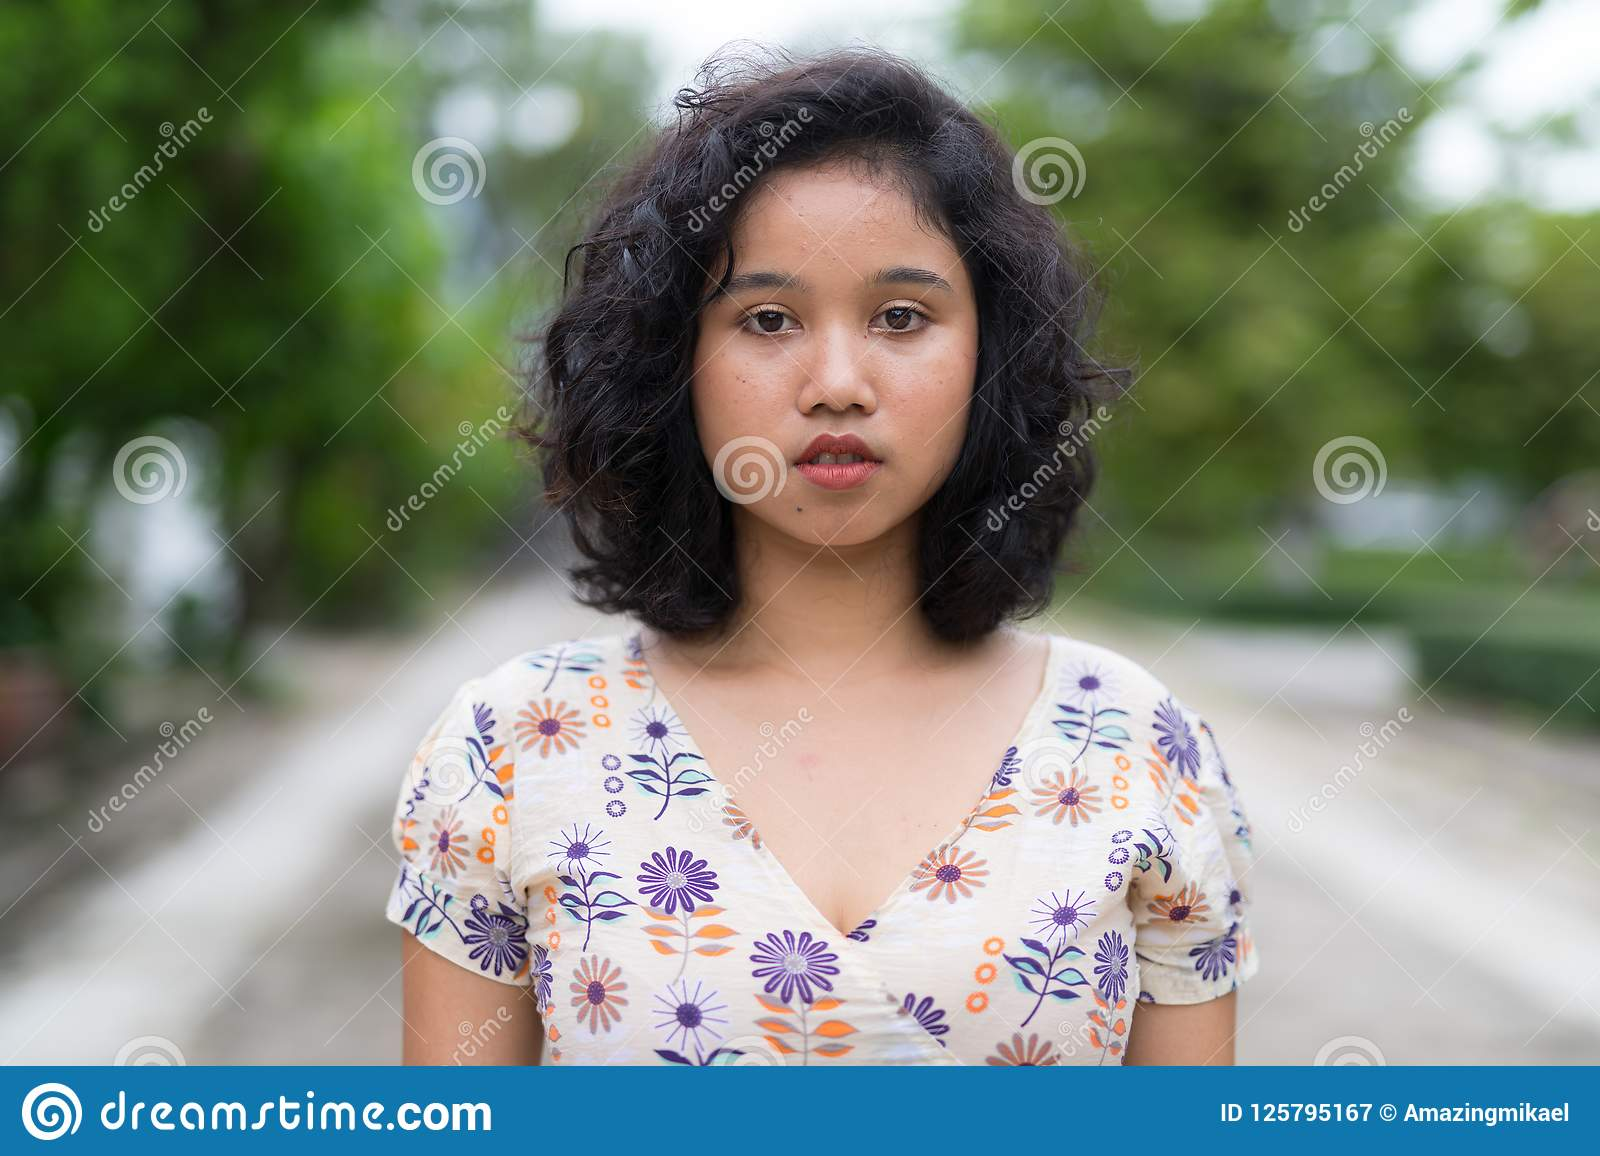 4 205 Young Beautiful Asian Woman Curly Hair Photos Free Royalty Free Stock Photos From Dreamstime